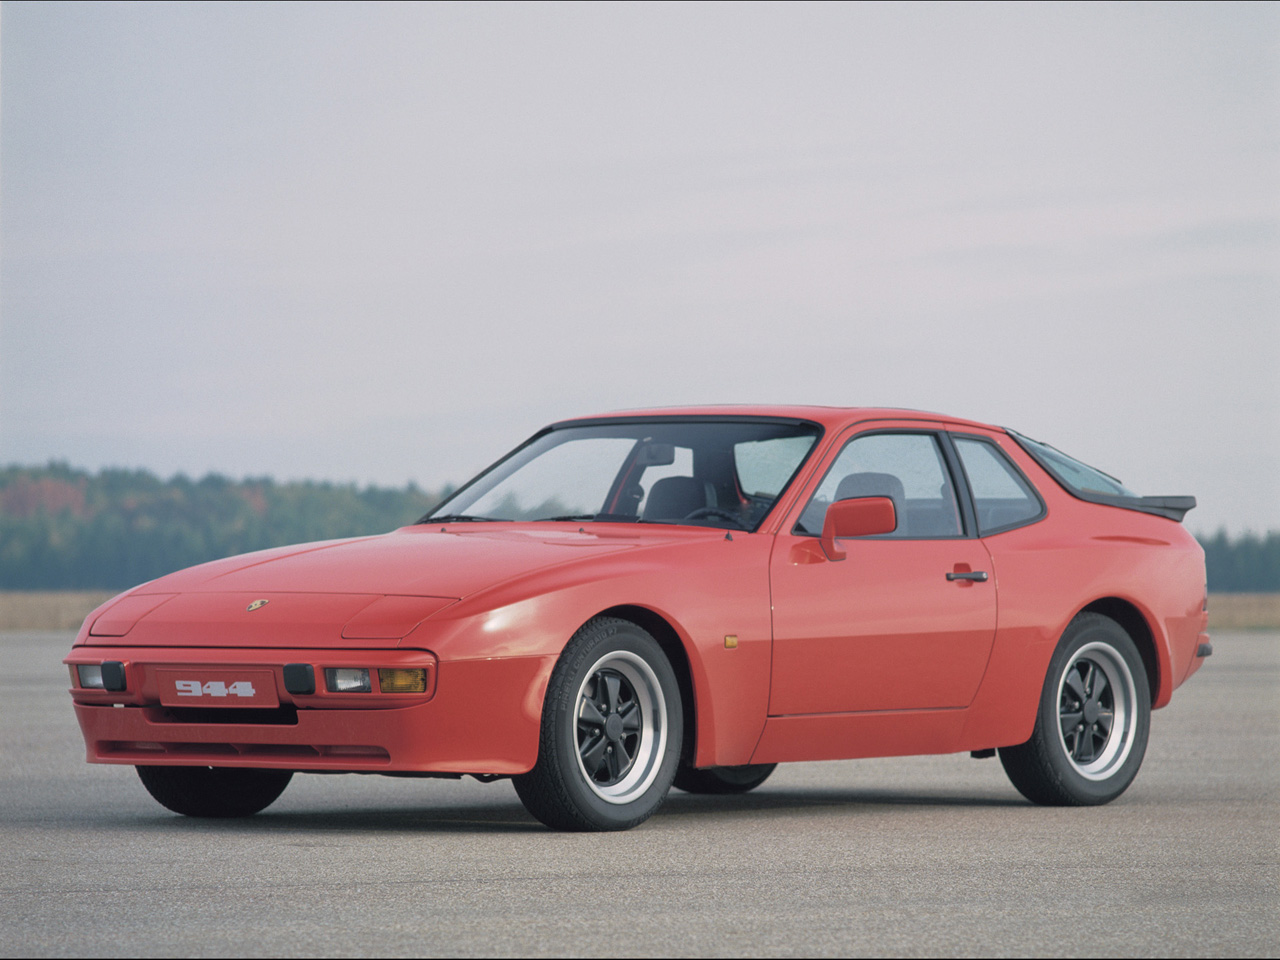 Porsche 944 Period Photos Porsche 944 Period Photos - 1982 2 - 1280x960 - Wallpaper